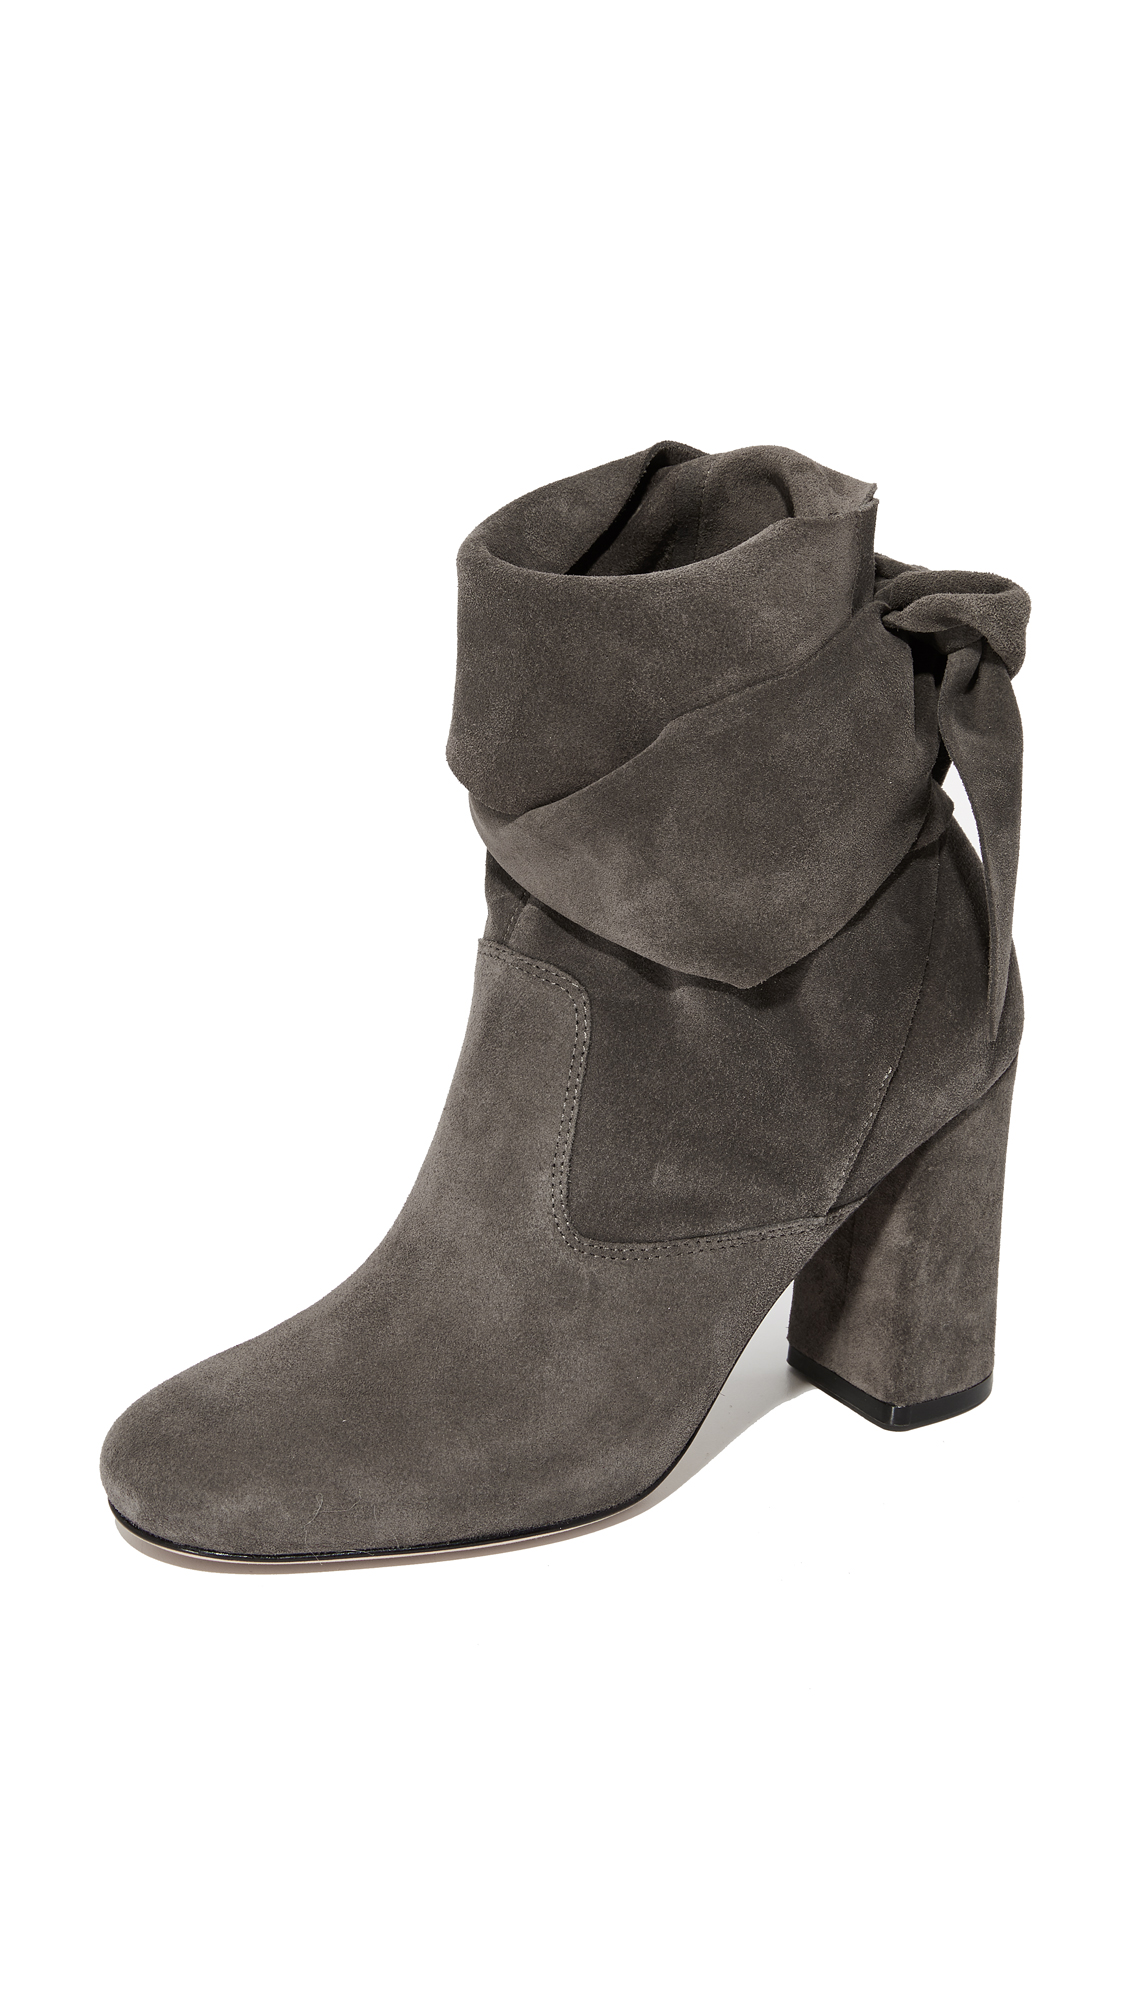 Sigerson Morrison Sally Suede Booties - Ossido